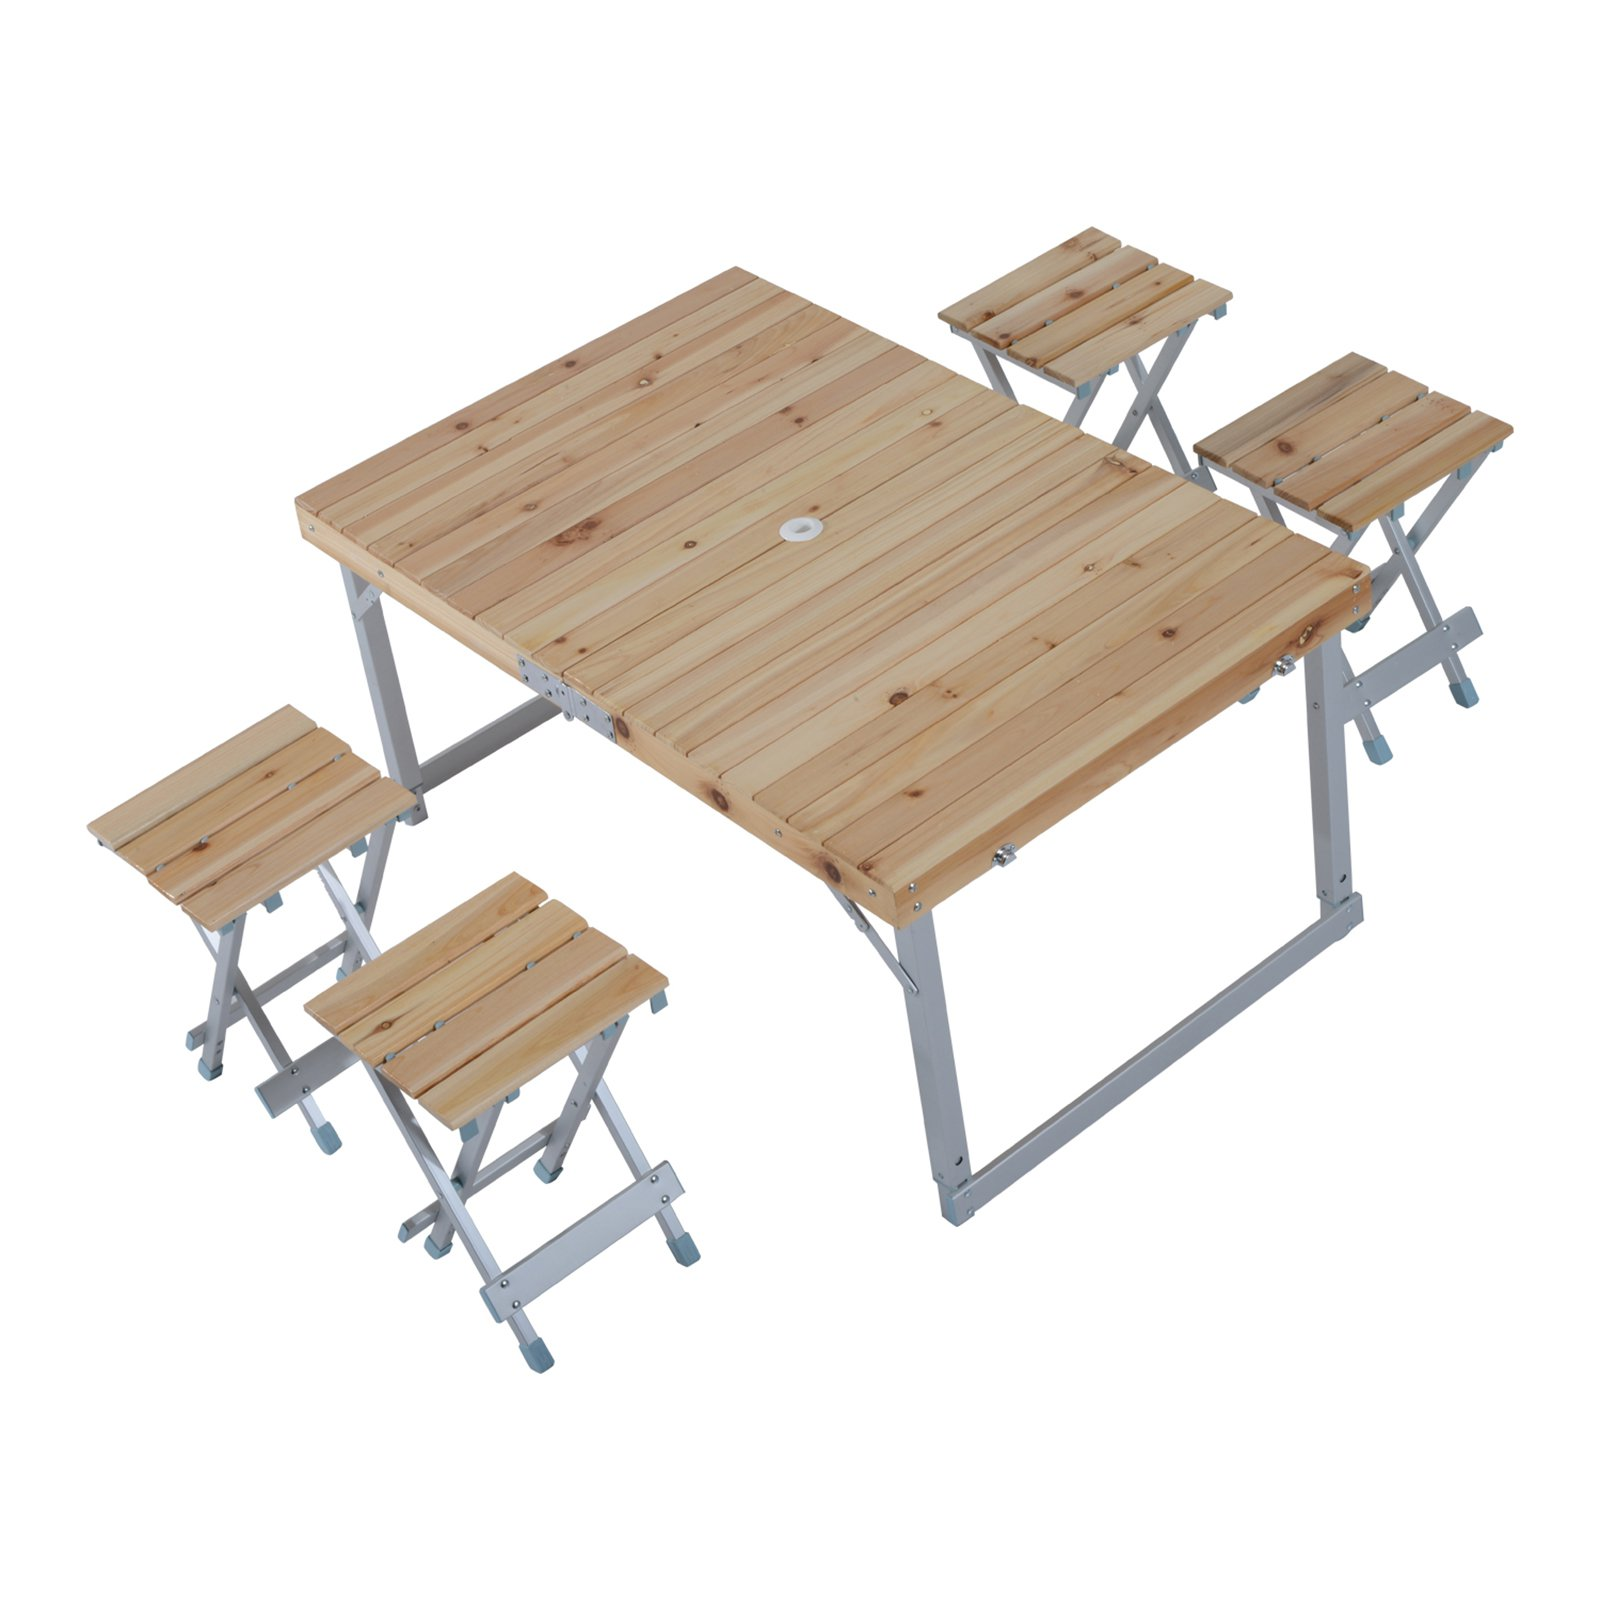 Outsunny Wooden Height Adjustable Folding Outdoor Picnic Table Set